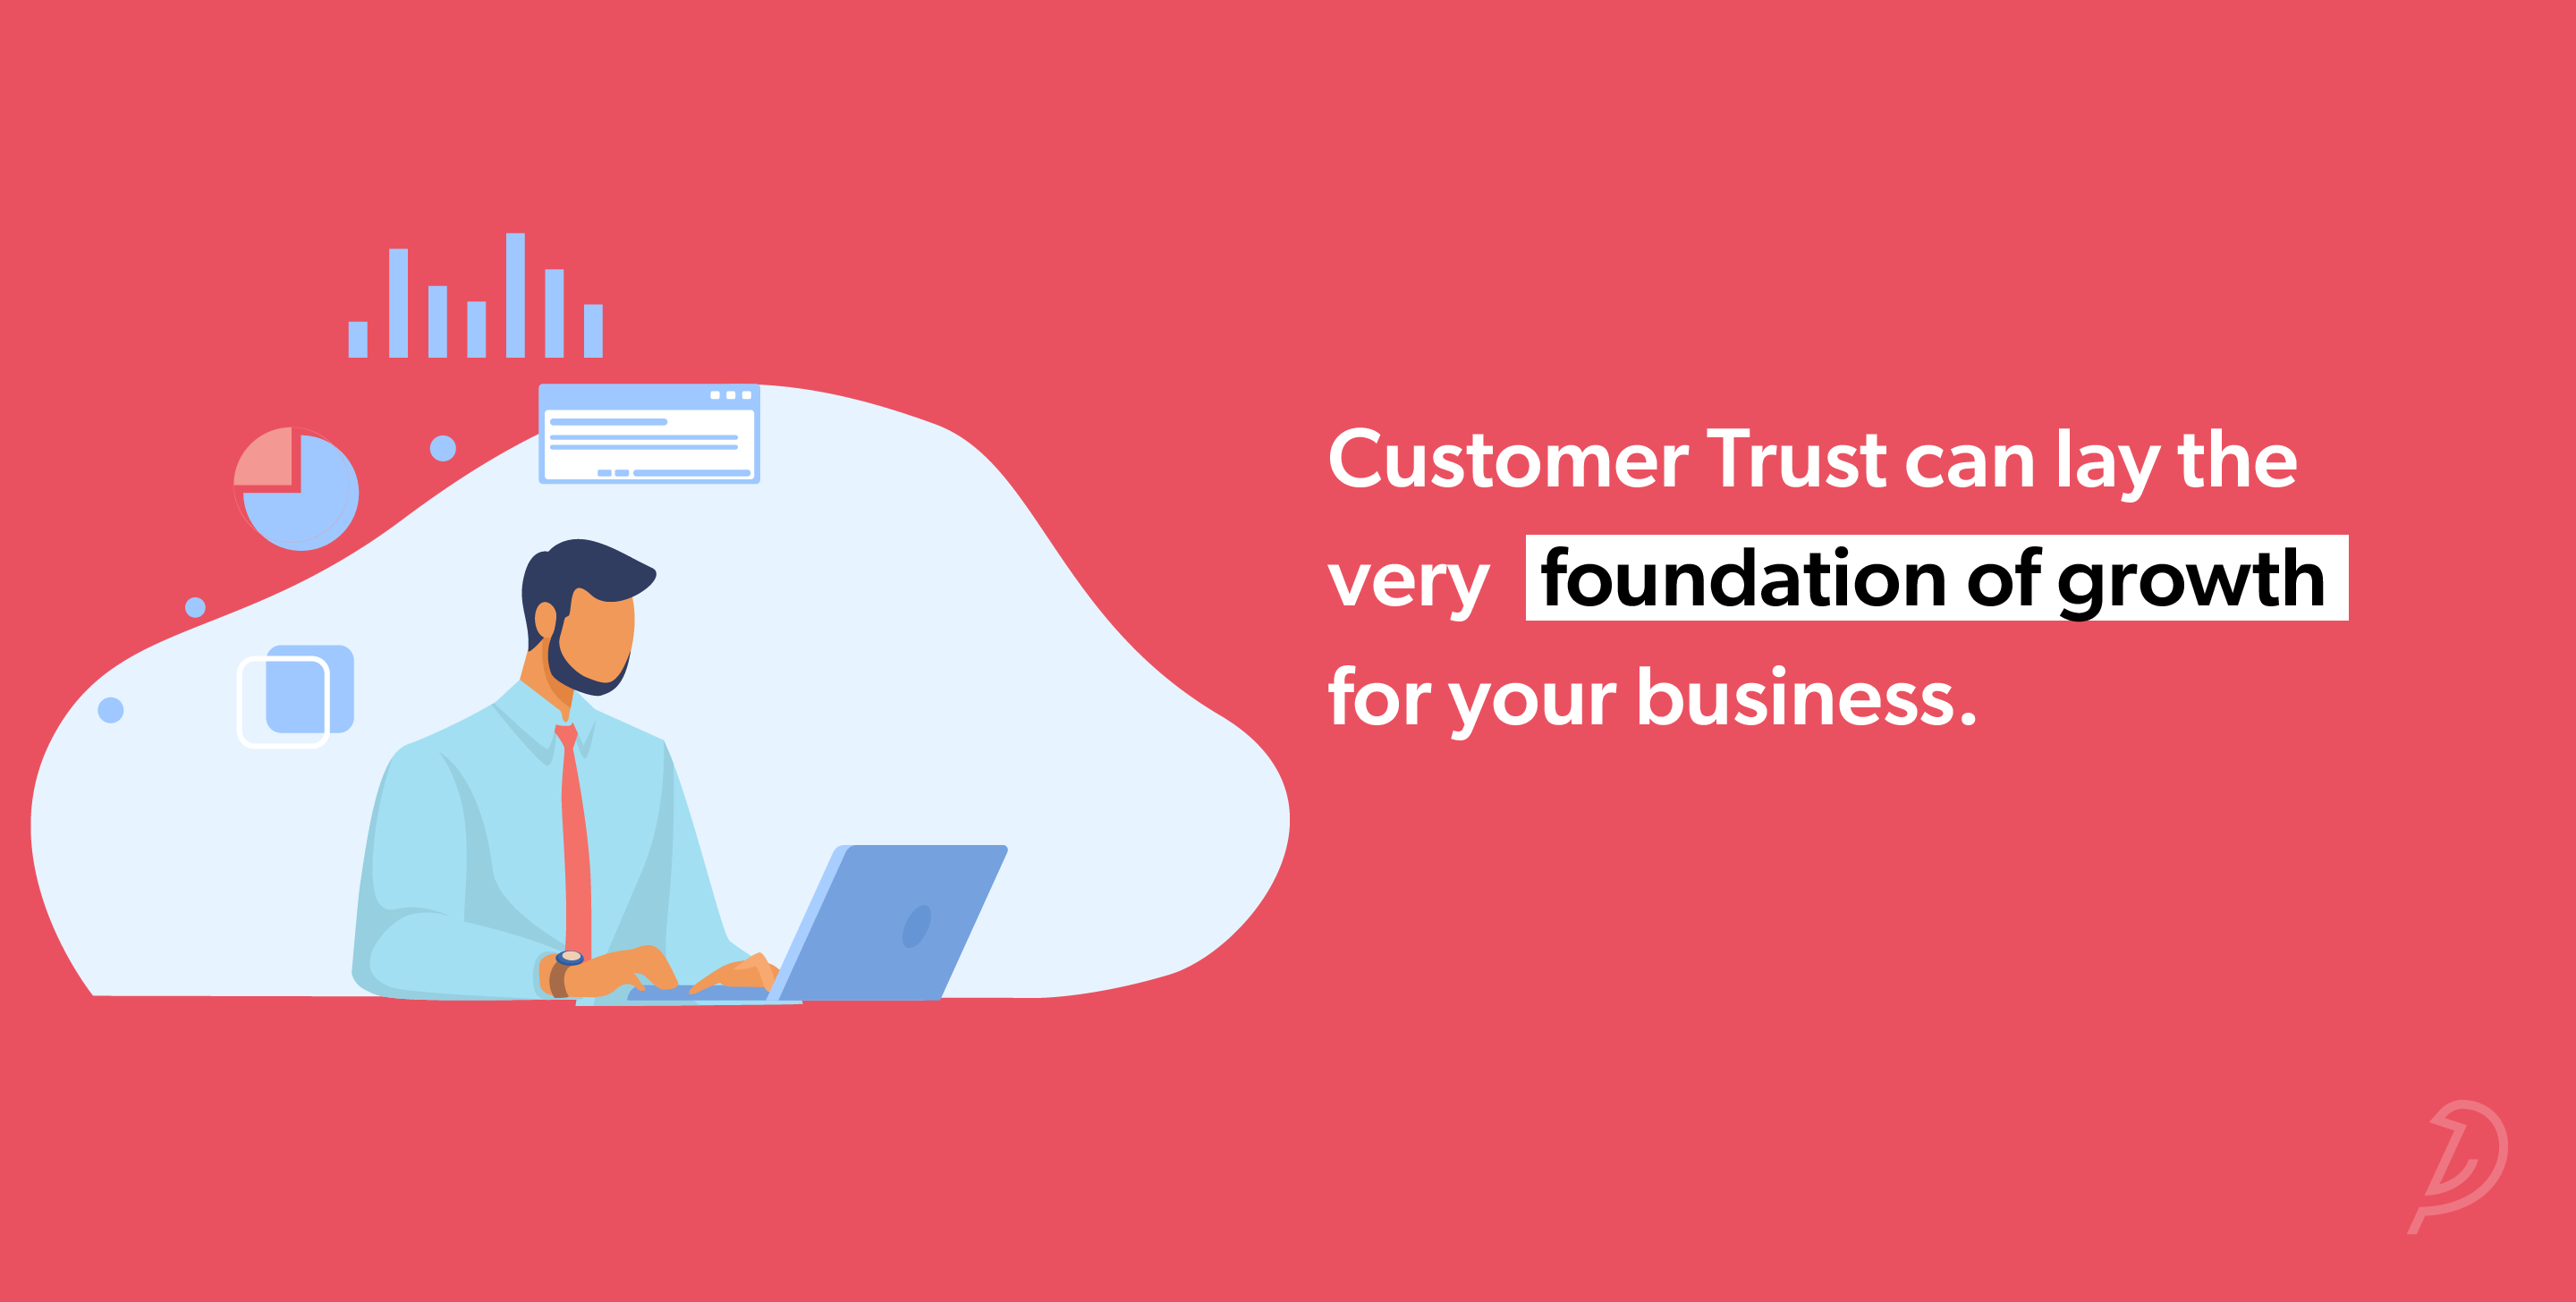 Customer Trust can lay the very foundation of growth for your business.